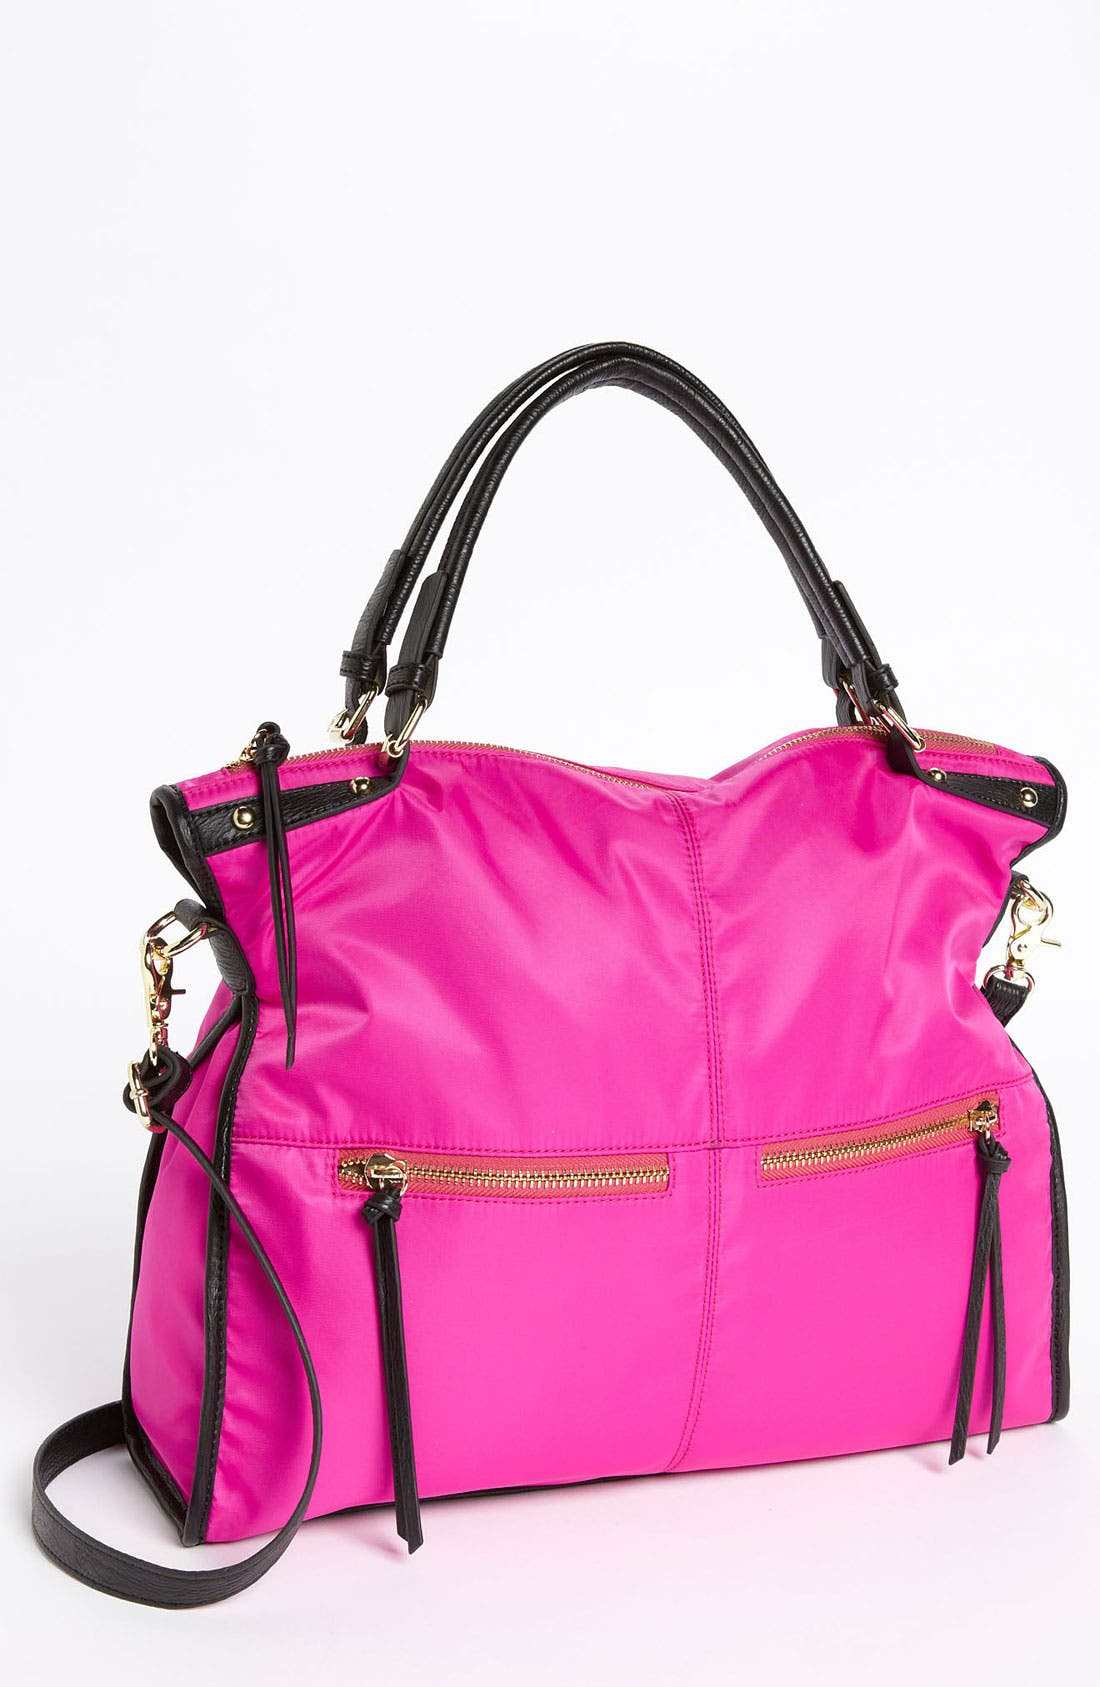 Main Image - Steven by Steve Madden 'Easy Going' Tote